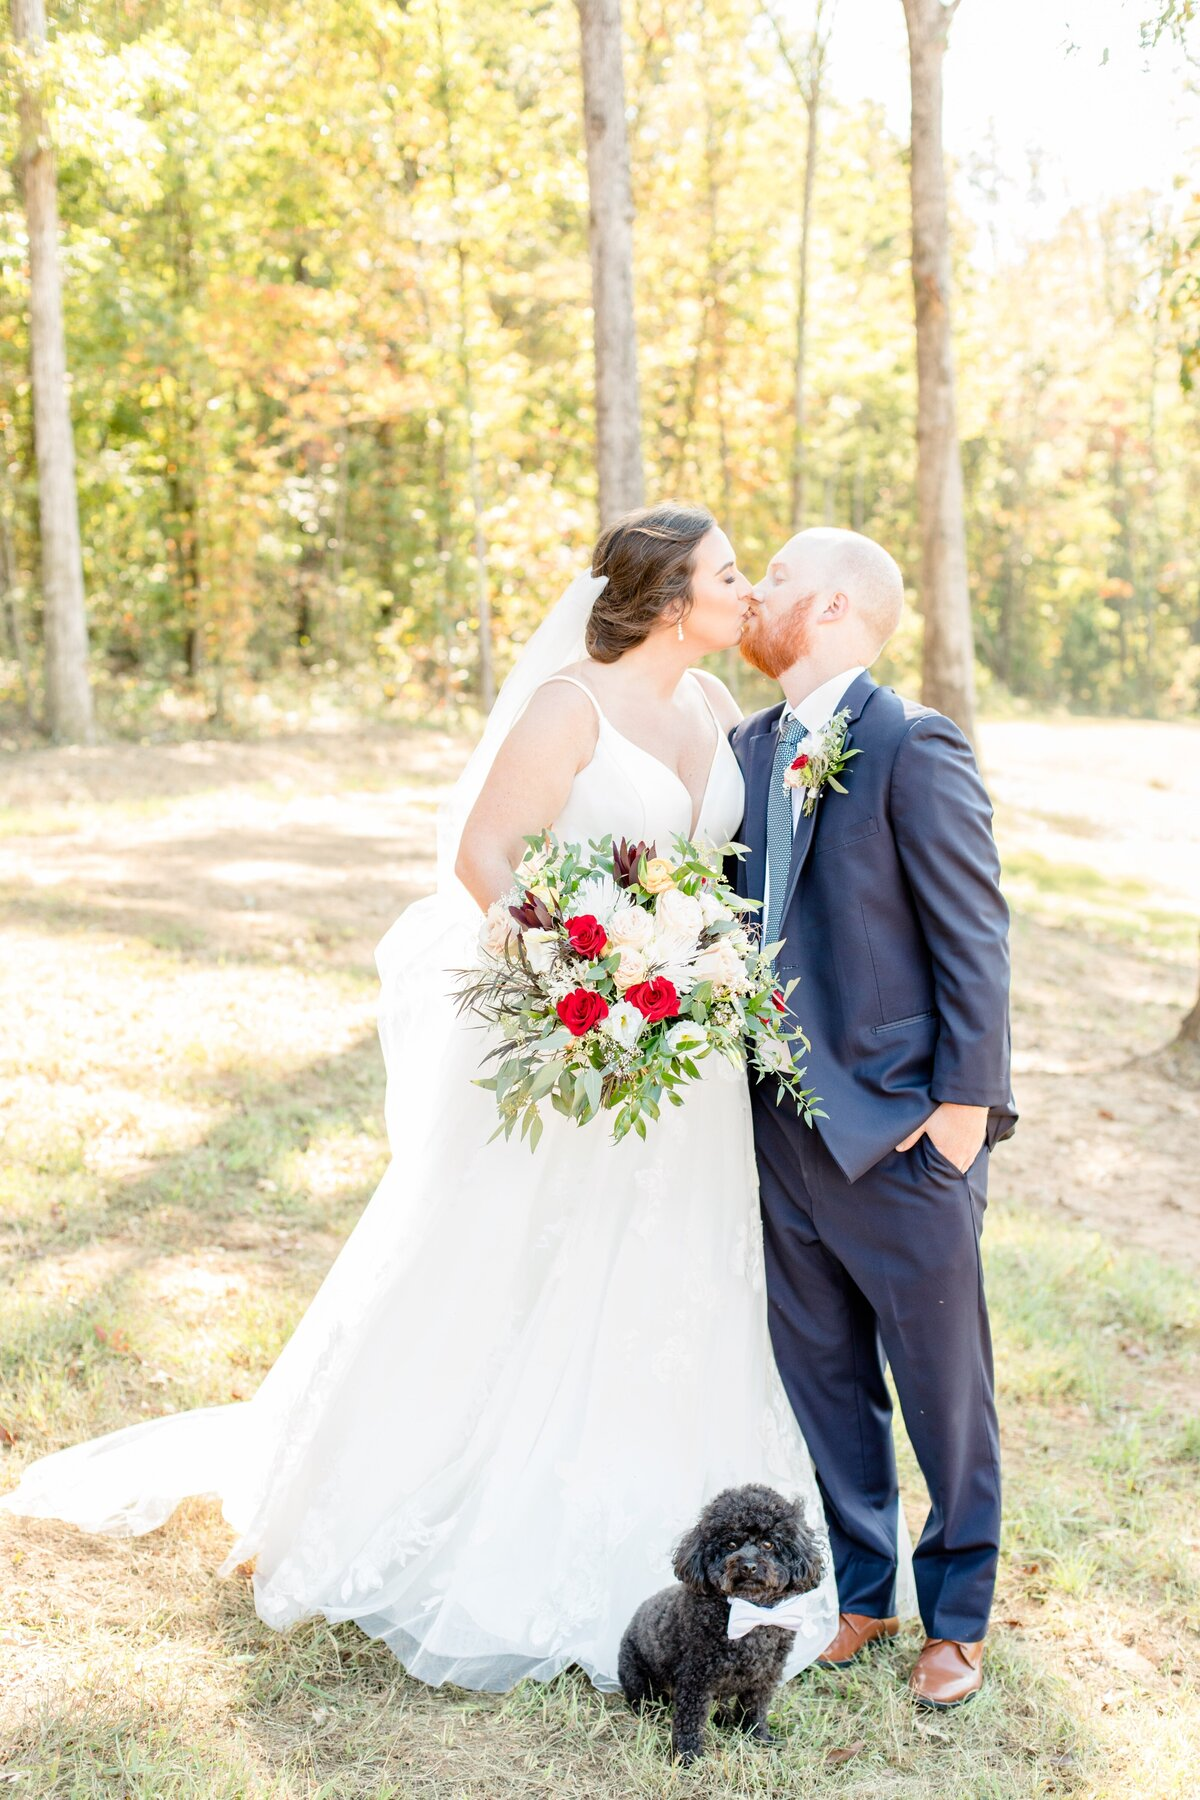 Oak Meadow Event Center - Birmingham, Alabama Wedding Photographers Katie & Alec Photography-12